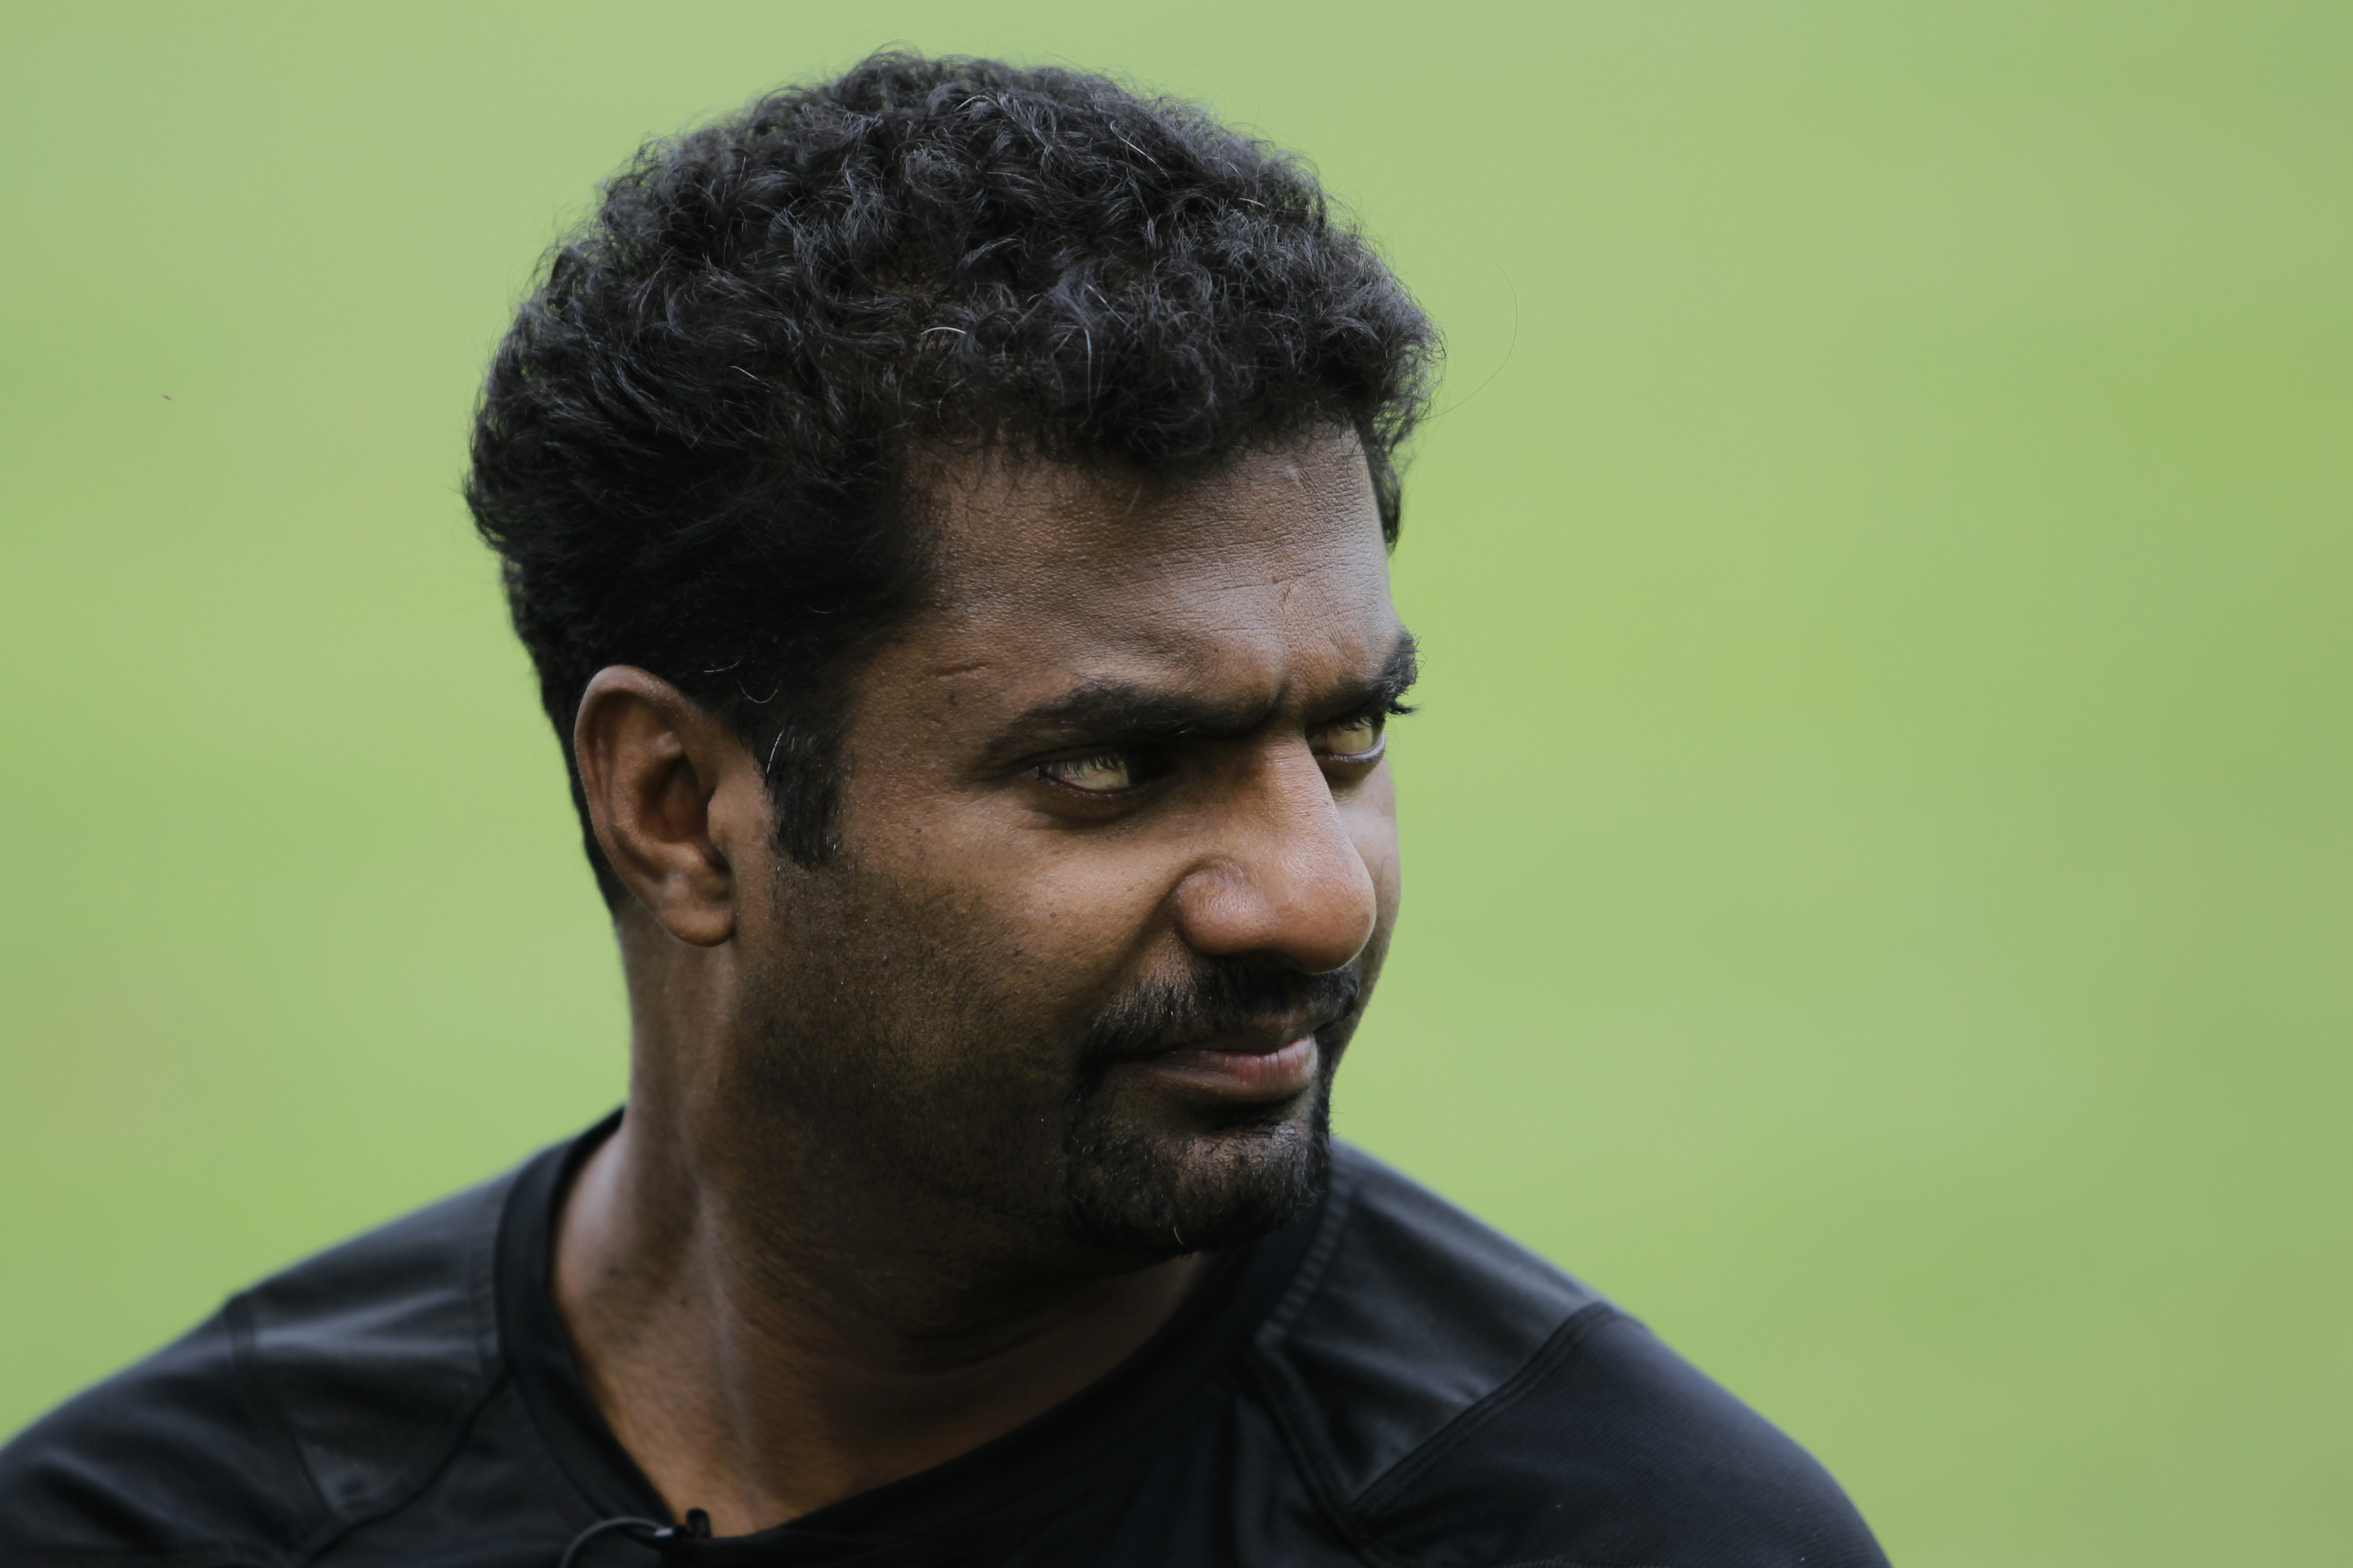 Vijay Sethupathi walks out of the film '800' after Muttiah Muralitharan's request